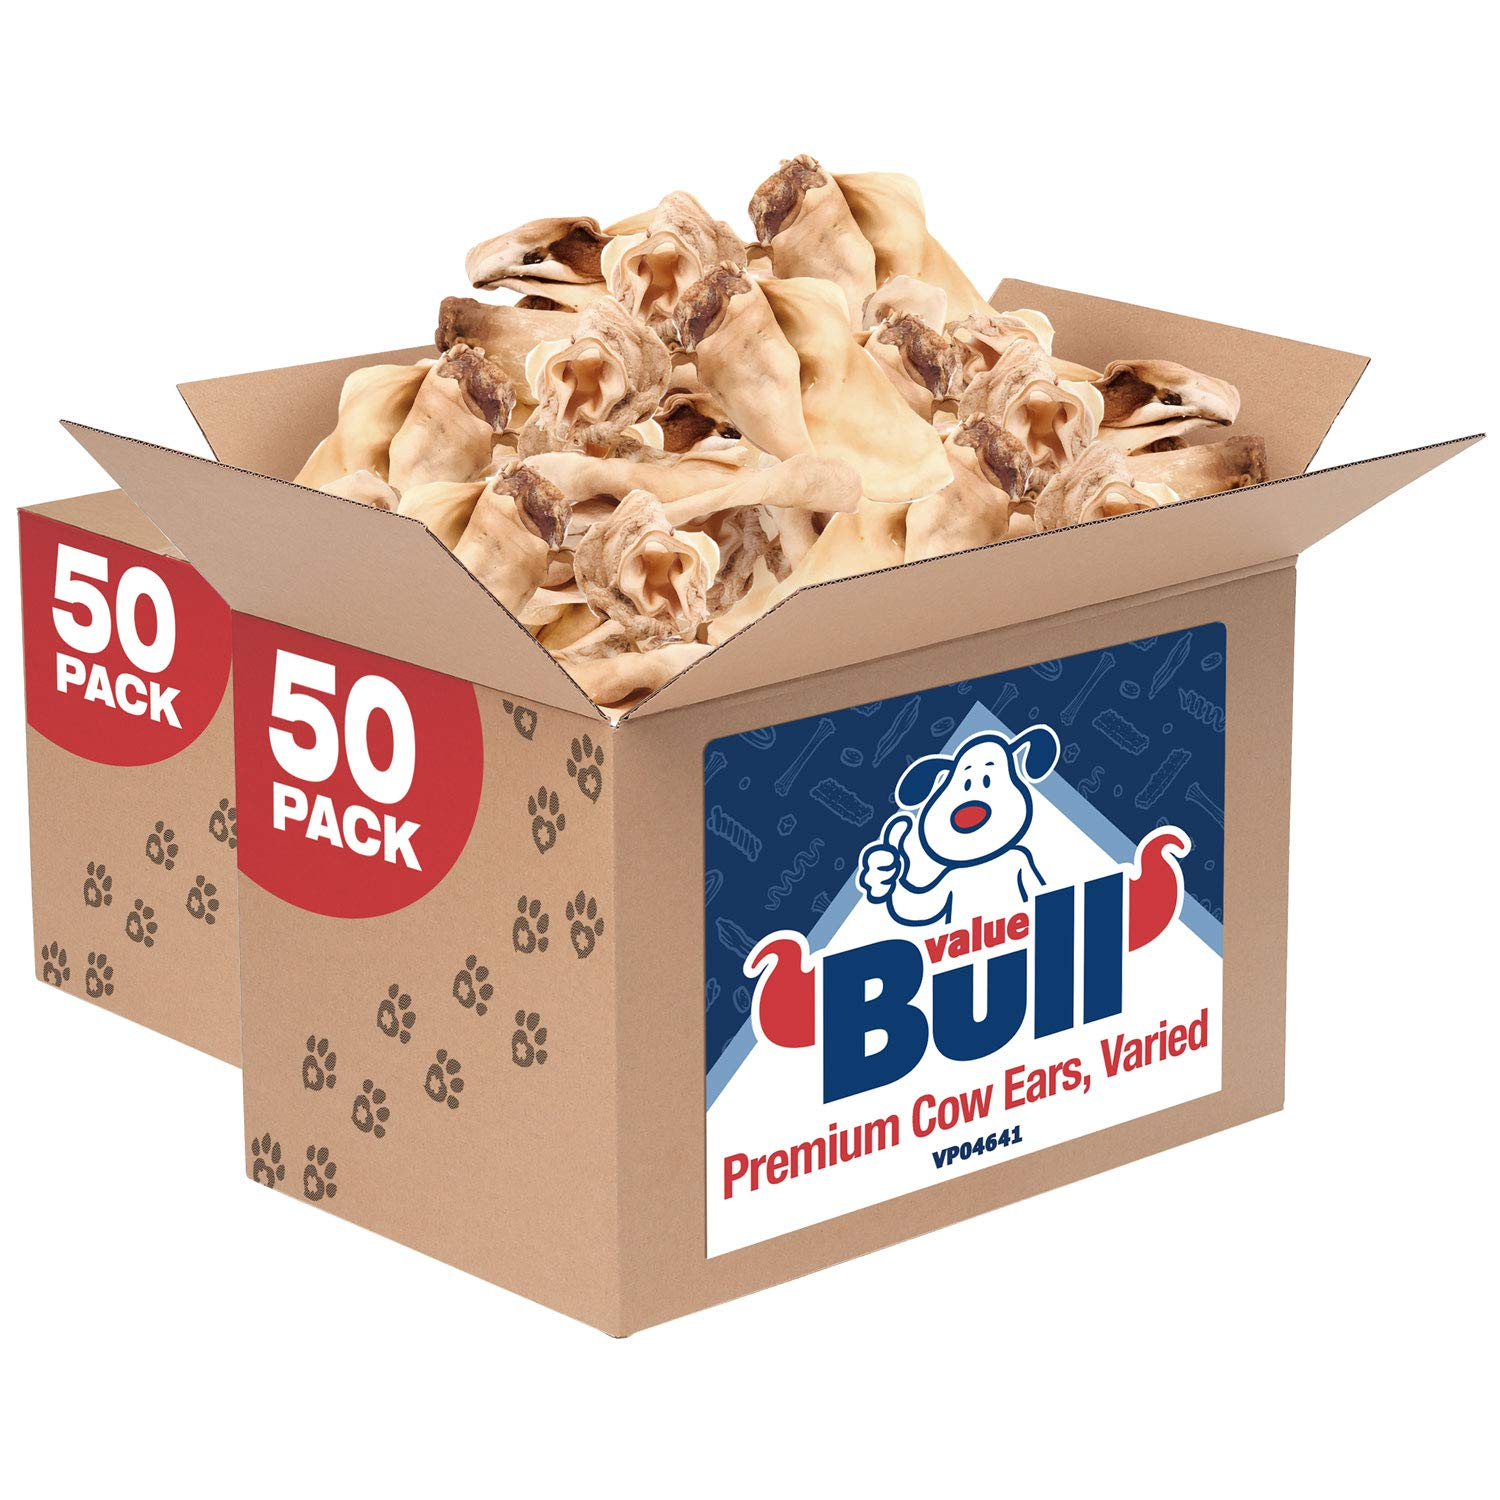 ValueBull Premium Cow Ears, Varied Sizes/Shapes, 100 Count - Angus Beef Dog Chews, Grass-Fed, Single Ingredient by ValueBull